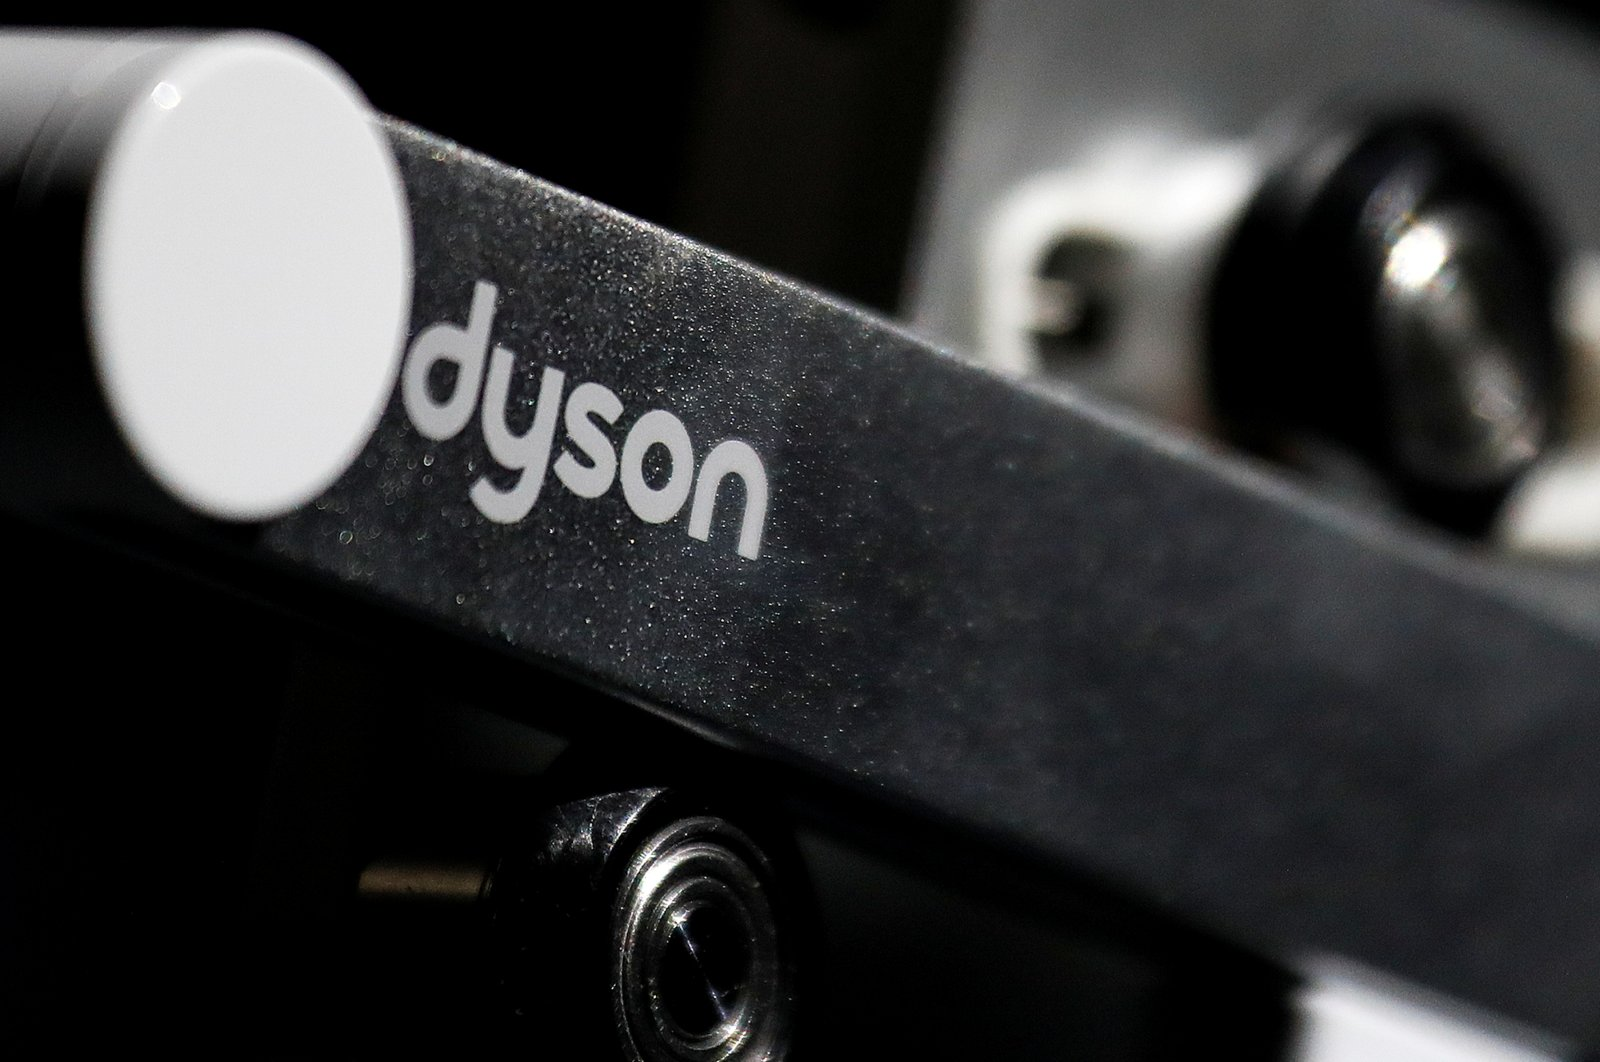 A Dyson logo is seen on one of the company's products presented during an event in Beijing, China, Sept. 12, 2018. (Reuters File Photo)